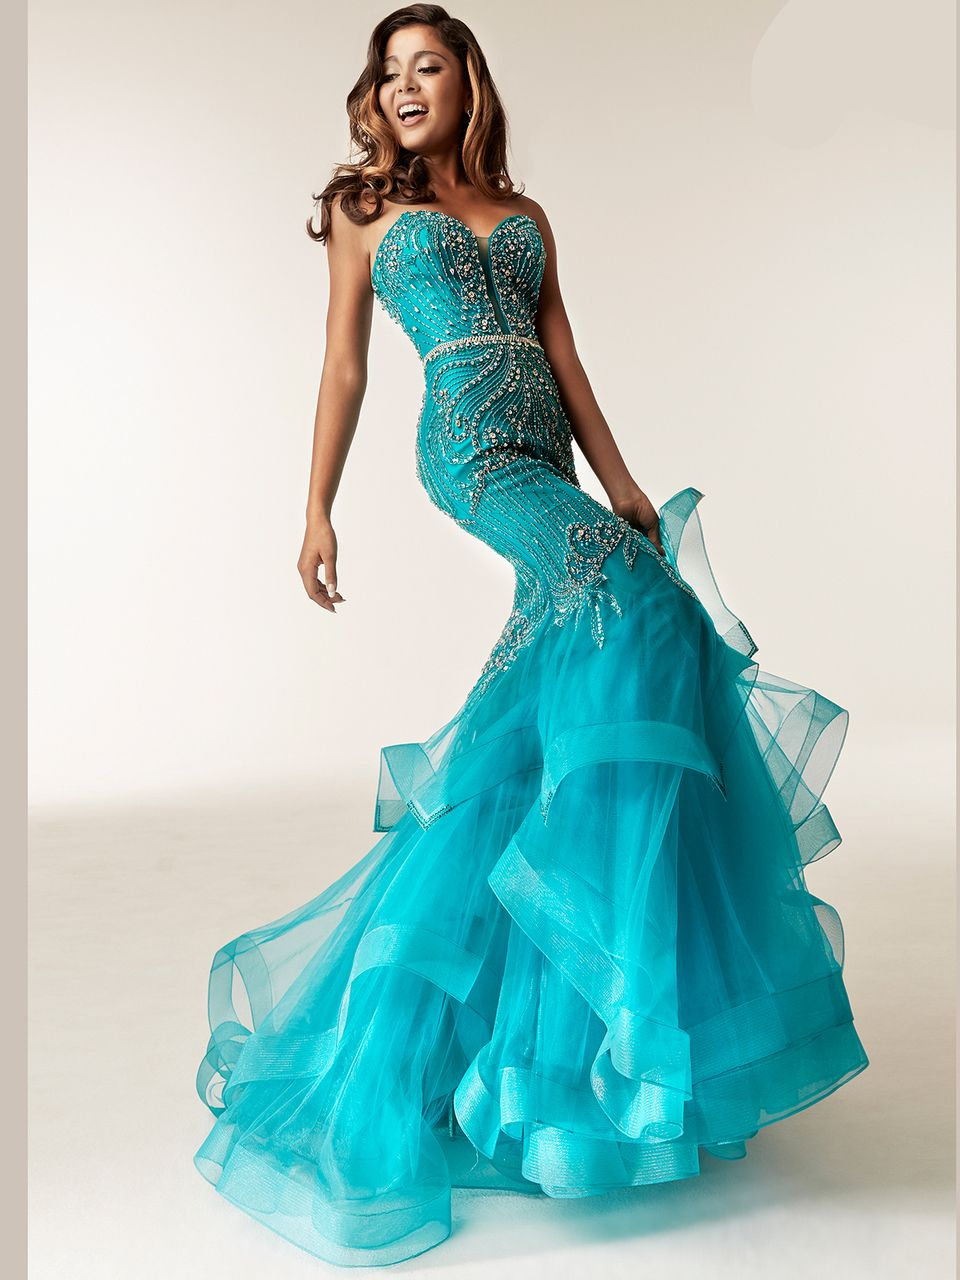 Pageantry dress in teal with fully beaded bodice and ...